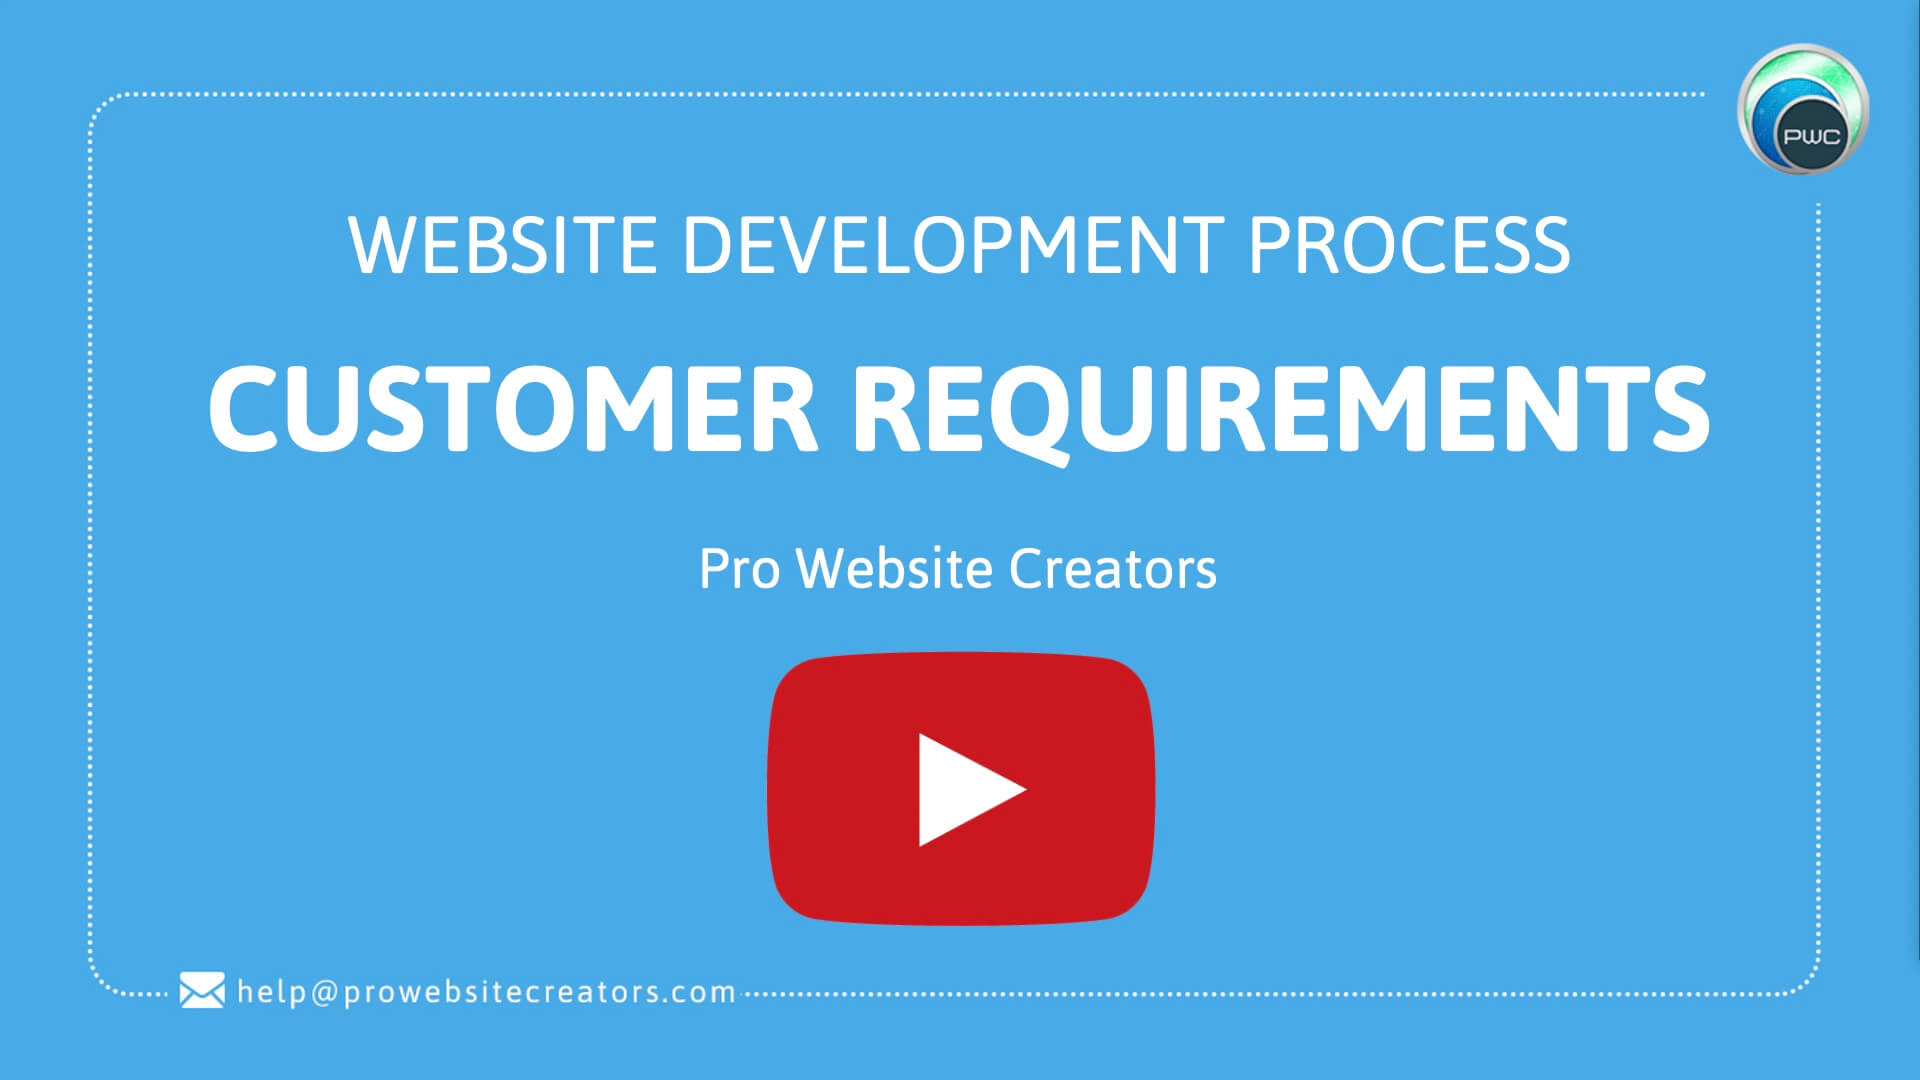 Pro Website Creators Website Development Process Customer Requirements with play button